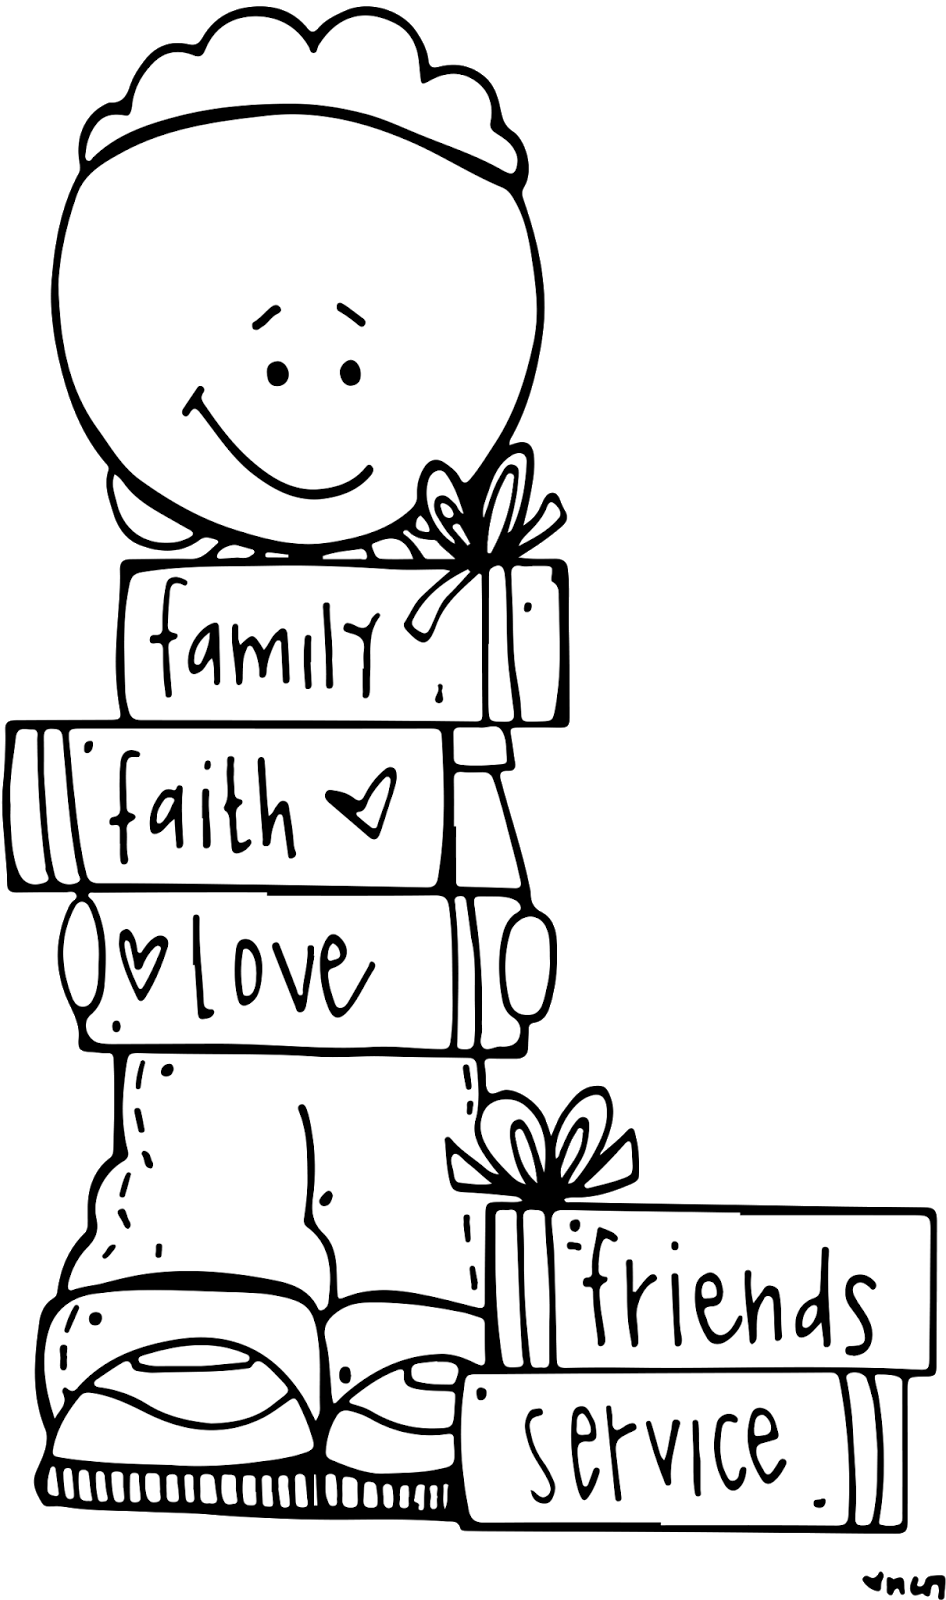 Melonheadz lds illustrating today. Empty tomb clipart i am the resurrection and the life